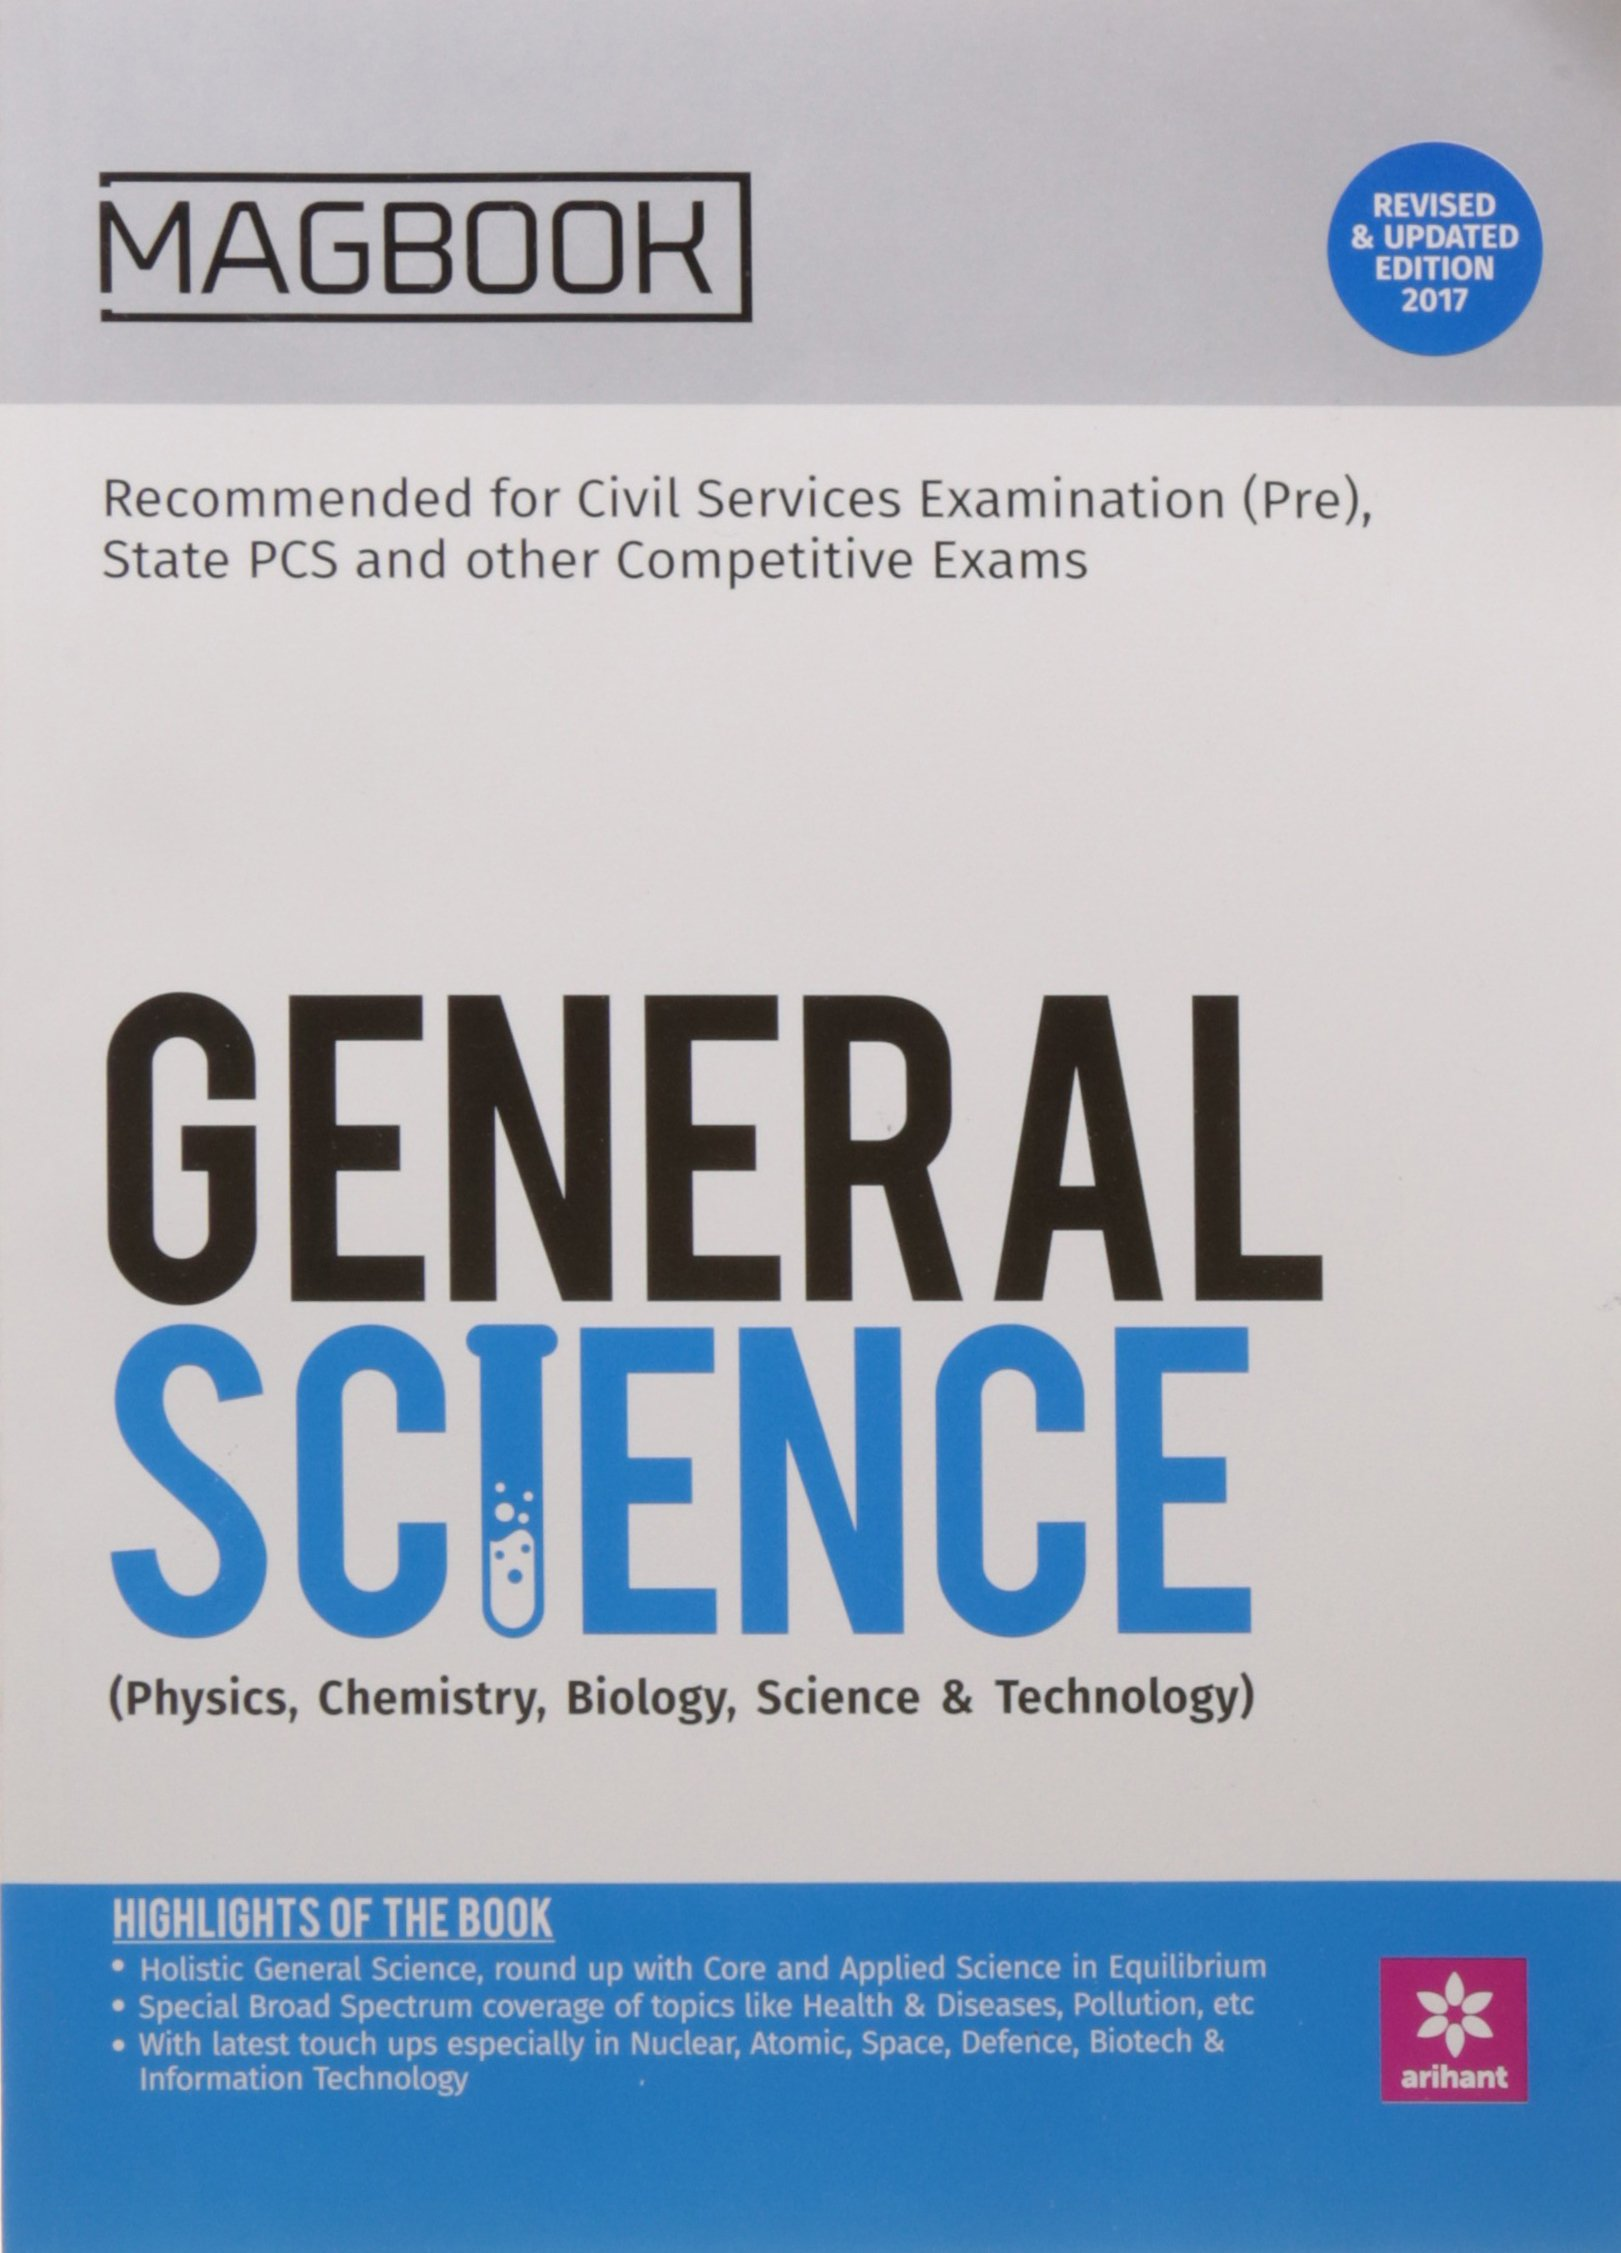 Buy Magbook General Science 2017 Book Online at Low Prices in India |  Magbook General Science 2017 Reviews & Ratings - Amazon.in